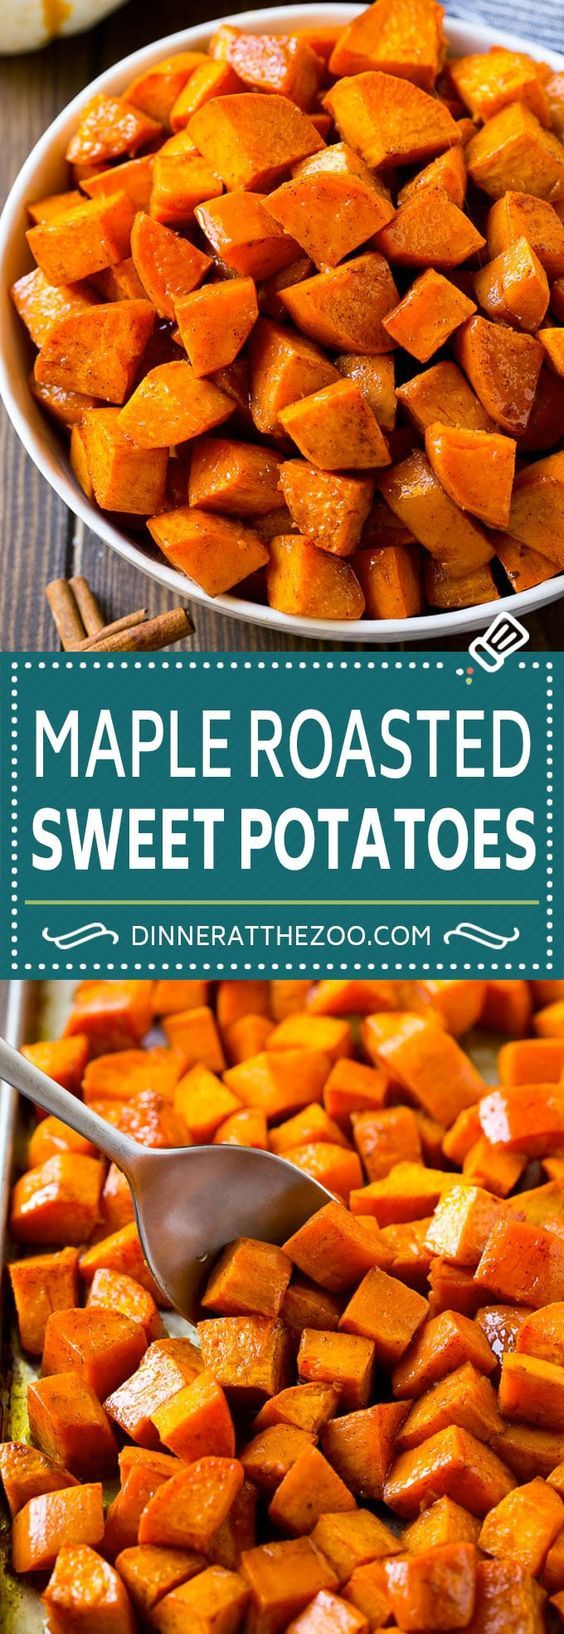 Treat Your Family And Friends To 55 Of The Very Best Holiday Side Dishes This Year Maple Roasted Sweet Potatoes Recipe | Easy Sweet Potatoes | Baked Sweet Potatoes | Sweet Potato Side Dish